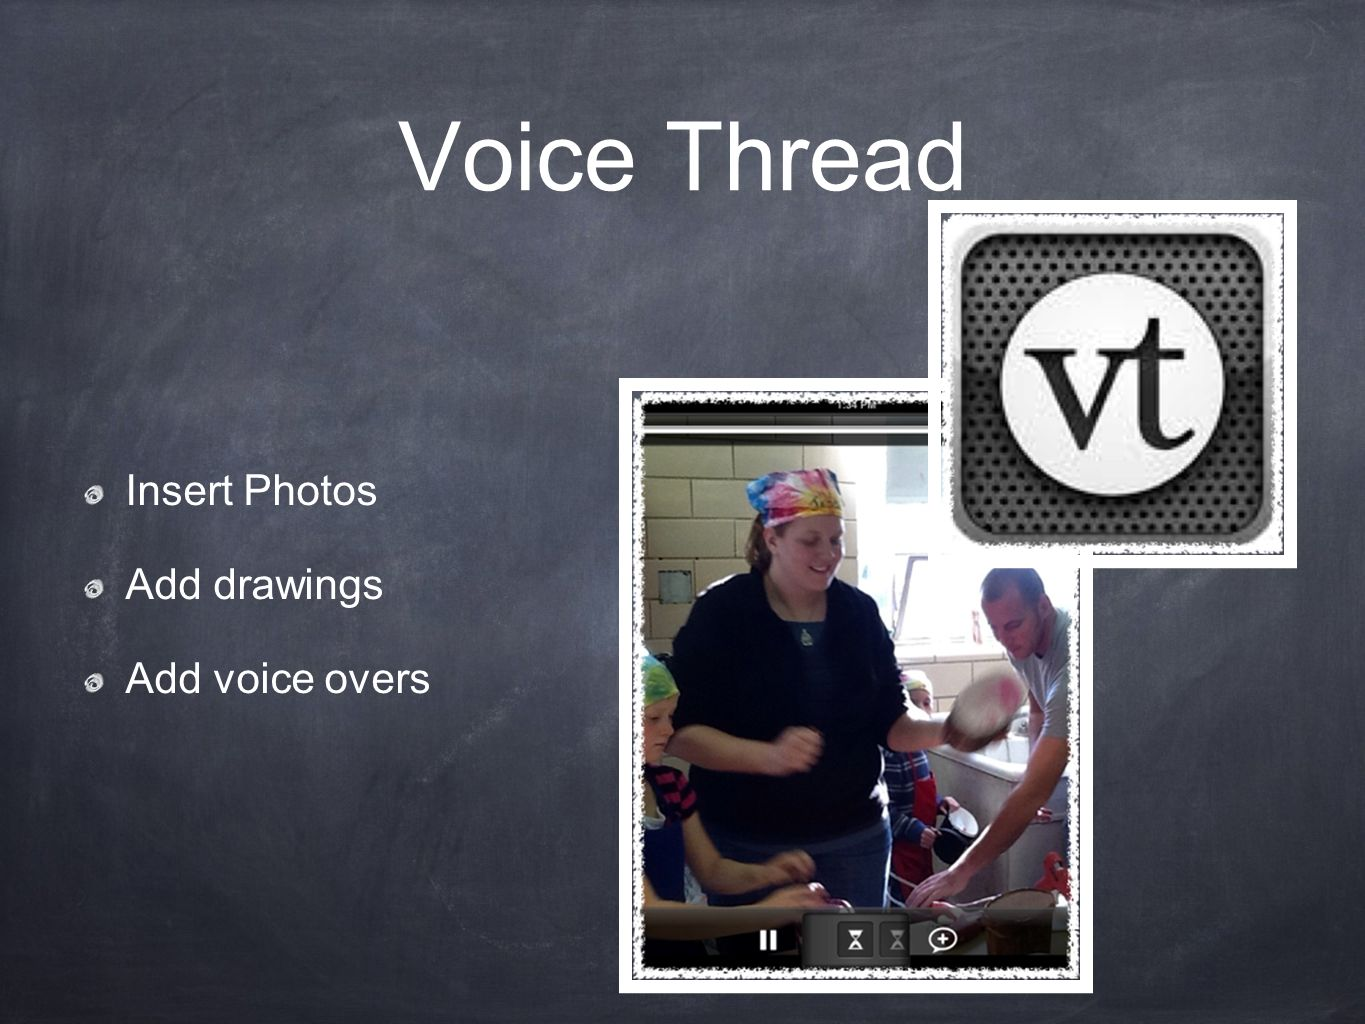 Voice Thread Insert Photos Add drawings Add voice overs